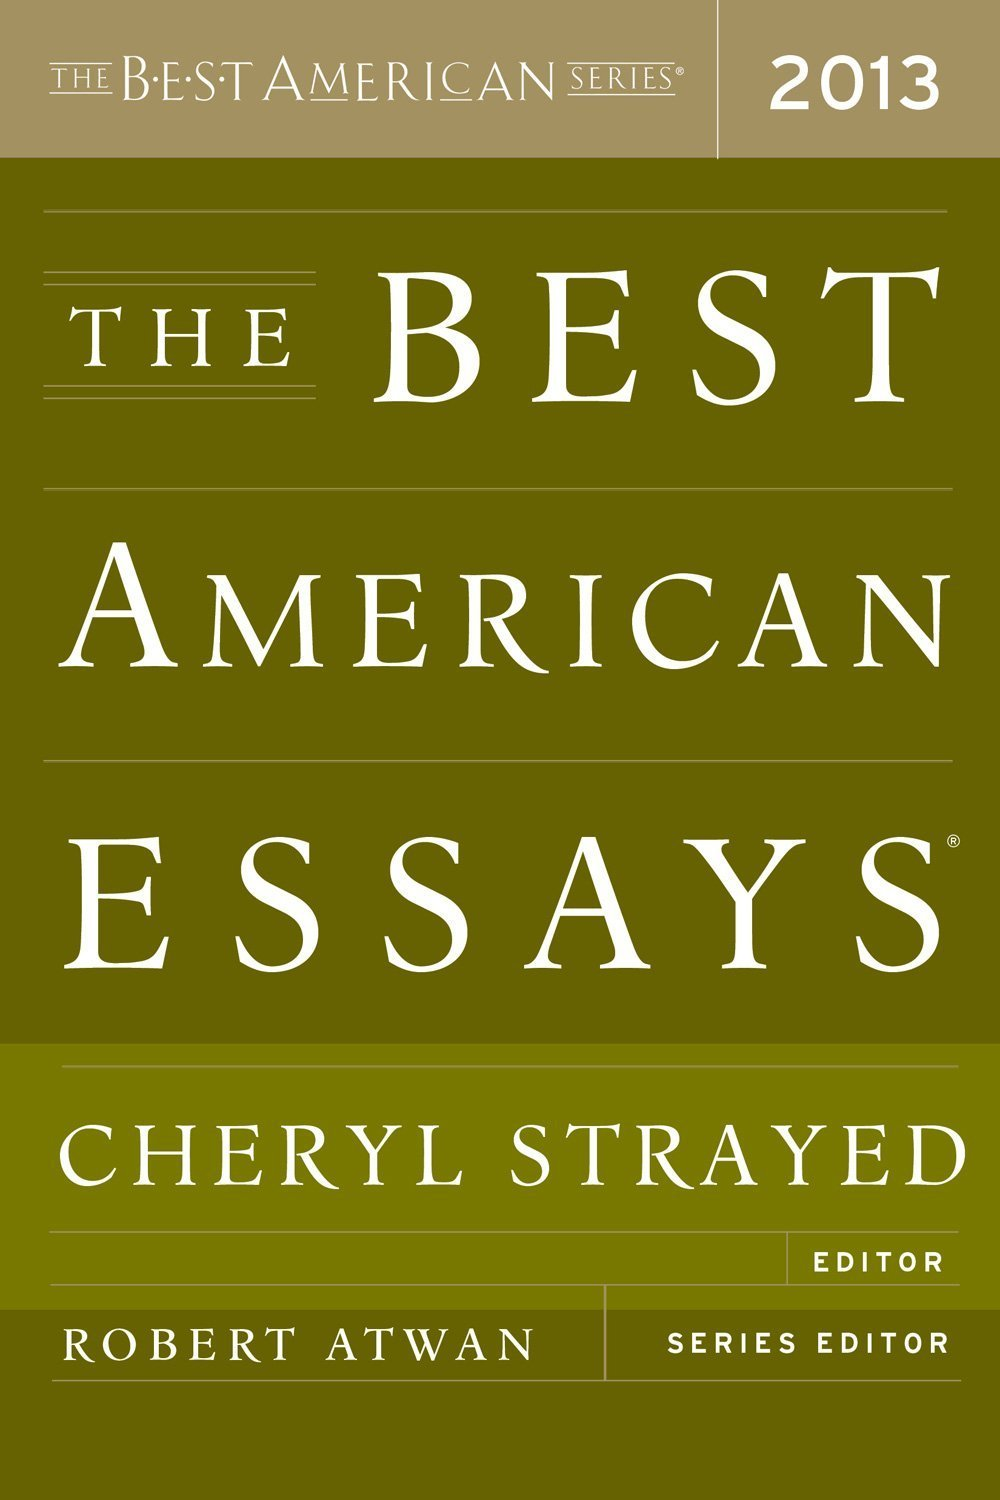 004 The Best American Essays Essay Wonderful Of Century Table Contents 2013 Pdf Download Full